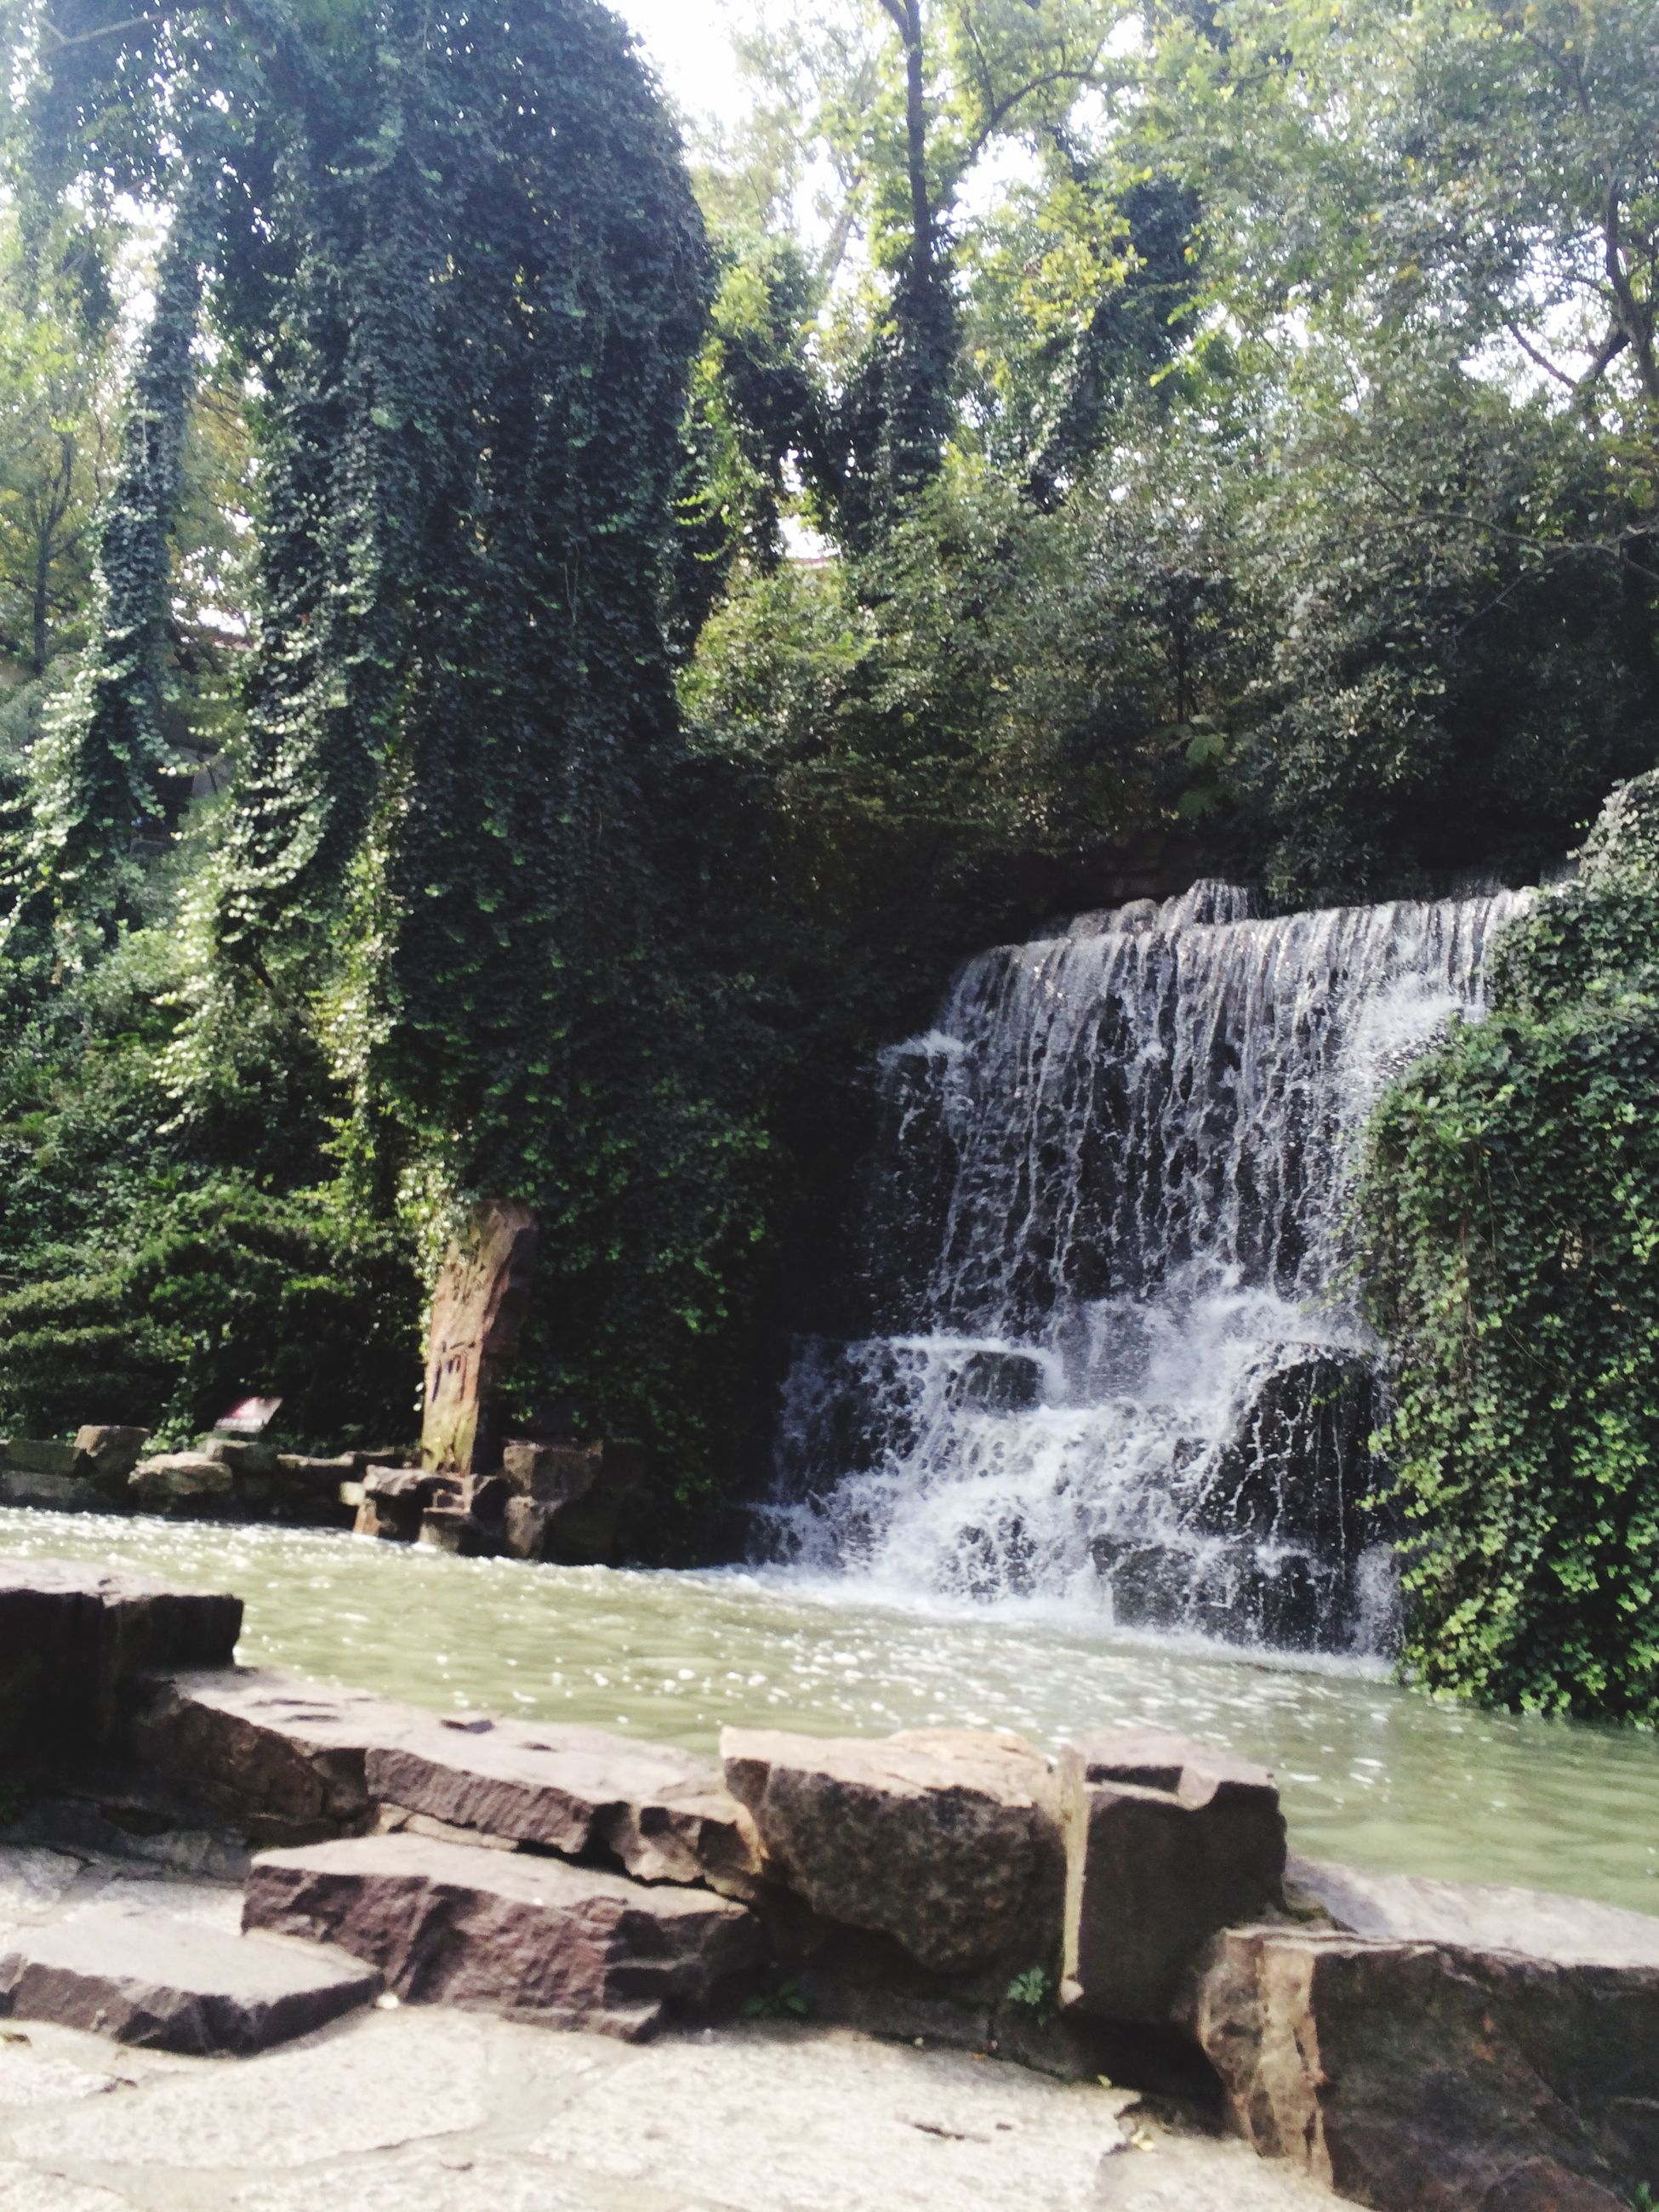 tree, water, rock - object, flowing water, beauty in nature, scenics, motion, waterfall, nature, forest, tranquility, tranquil scene, flowing, growth, idyllic, long exposure, day, sunlight, non-urban scene, park - man made space